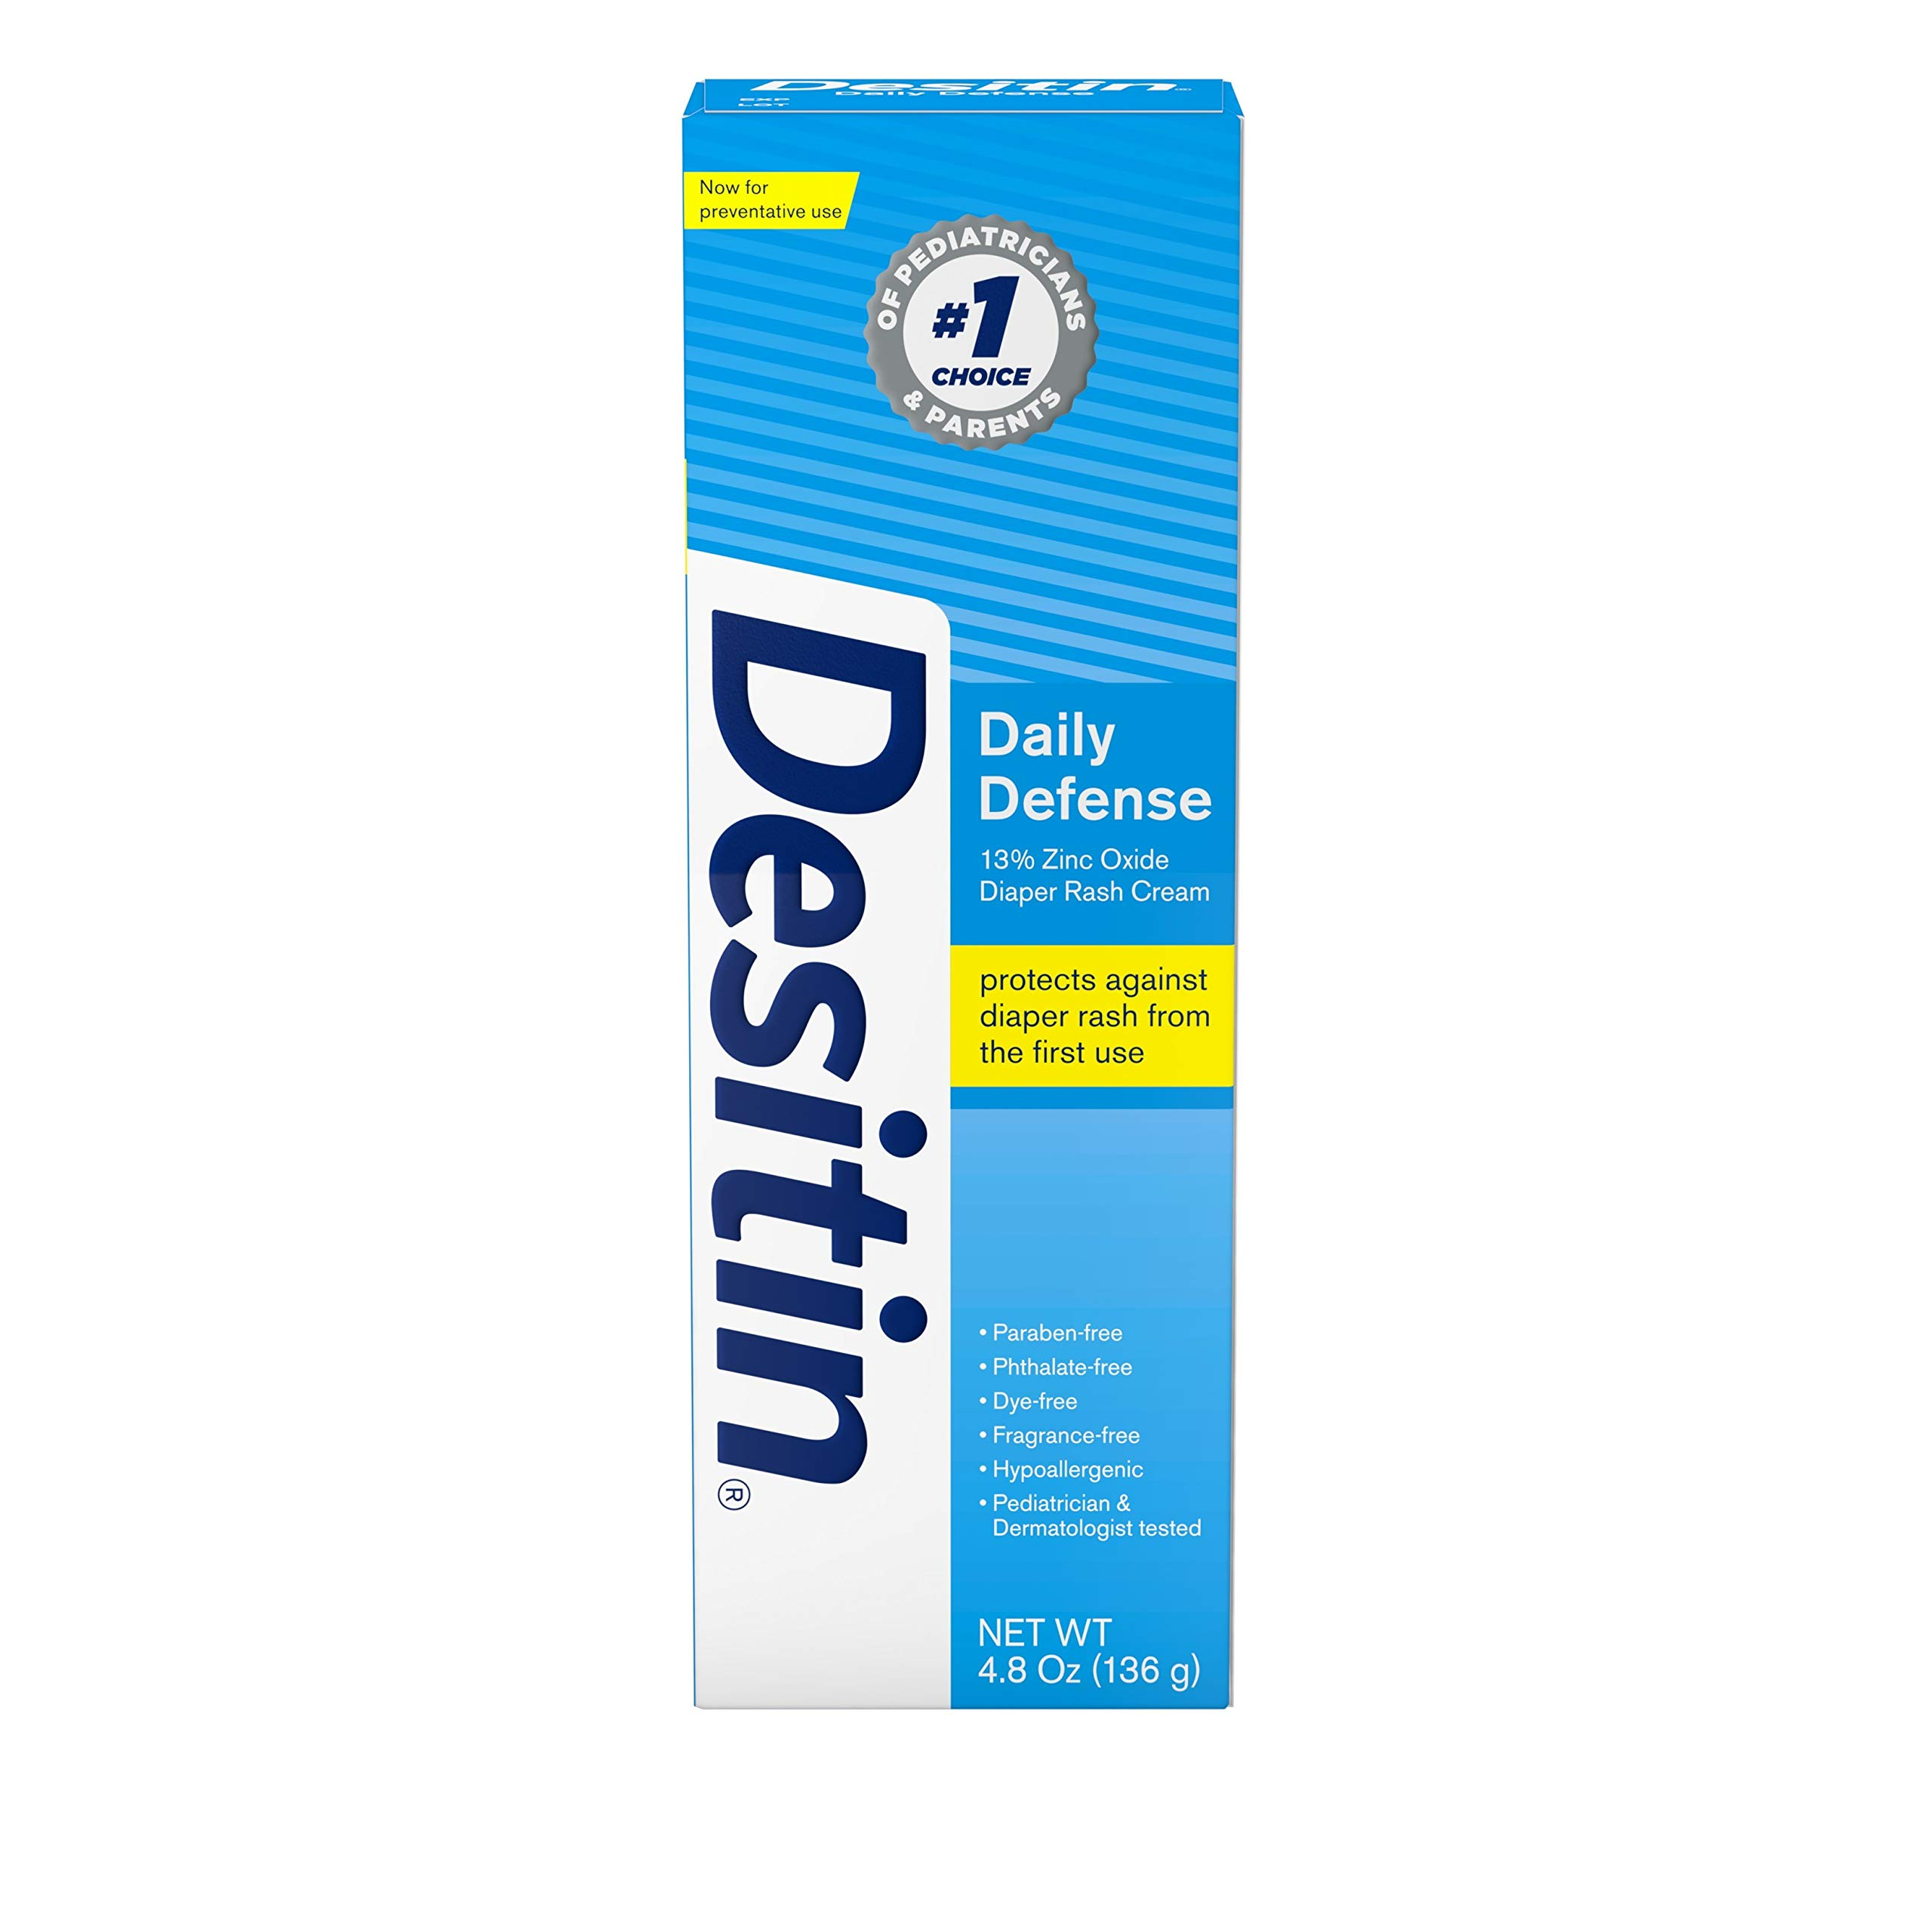 Desitin Daily Defense Baby Diaper Rash Cream with Zinc Oxide to Treat, Relieve & Prevent Diaper Rash, Hypoallergenic, Dye-, Phthalate- & Paraben-Free, 4.8 oz